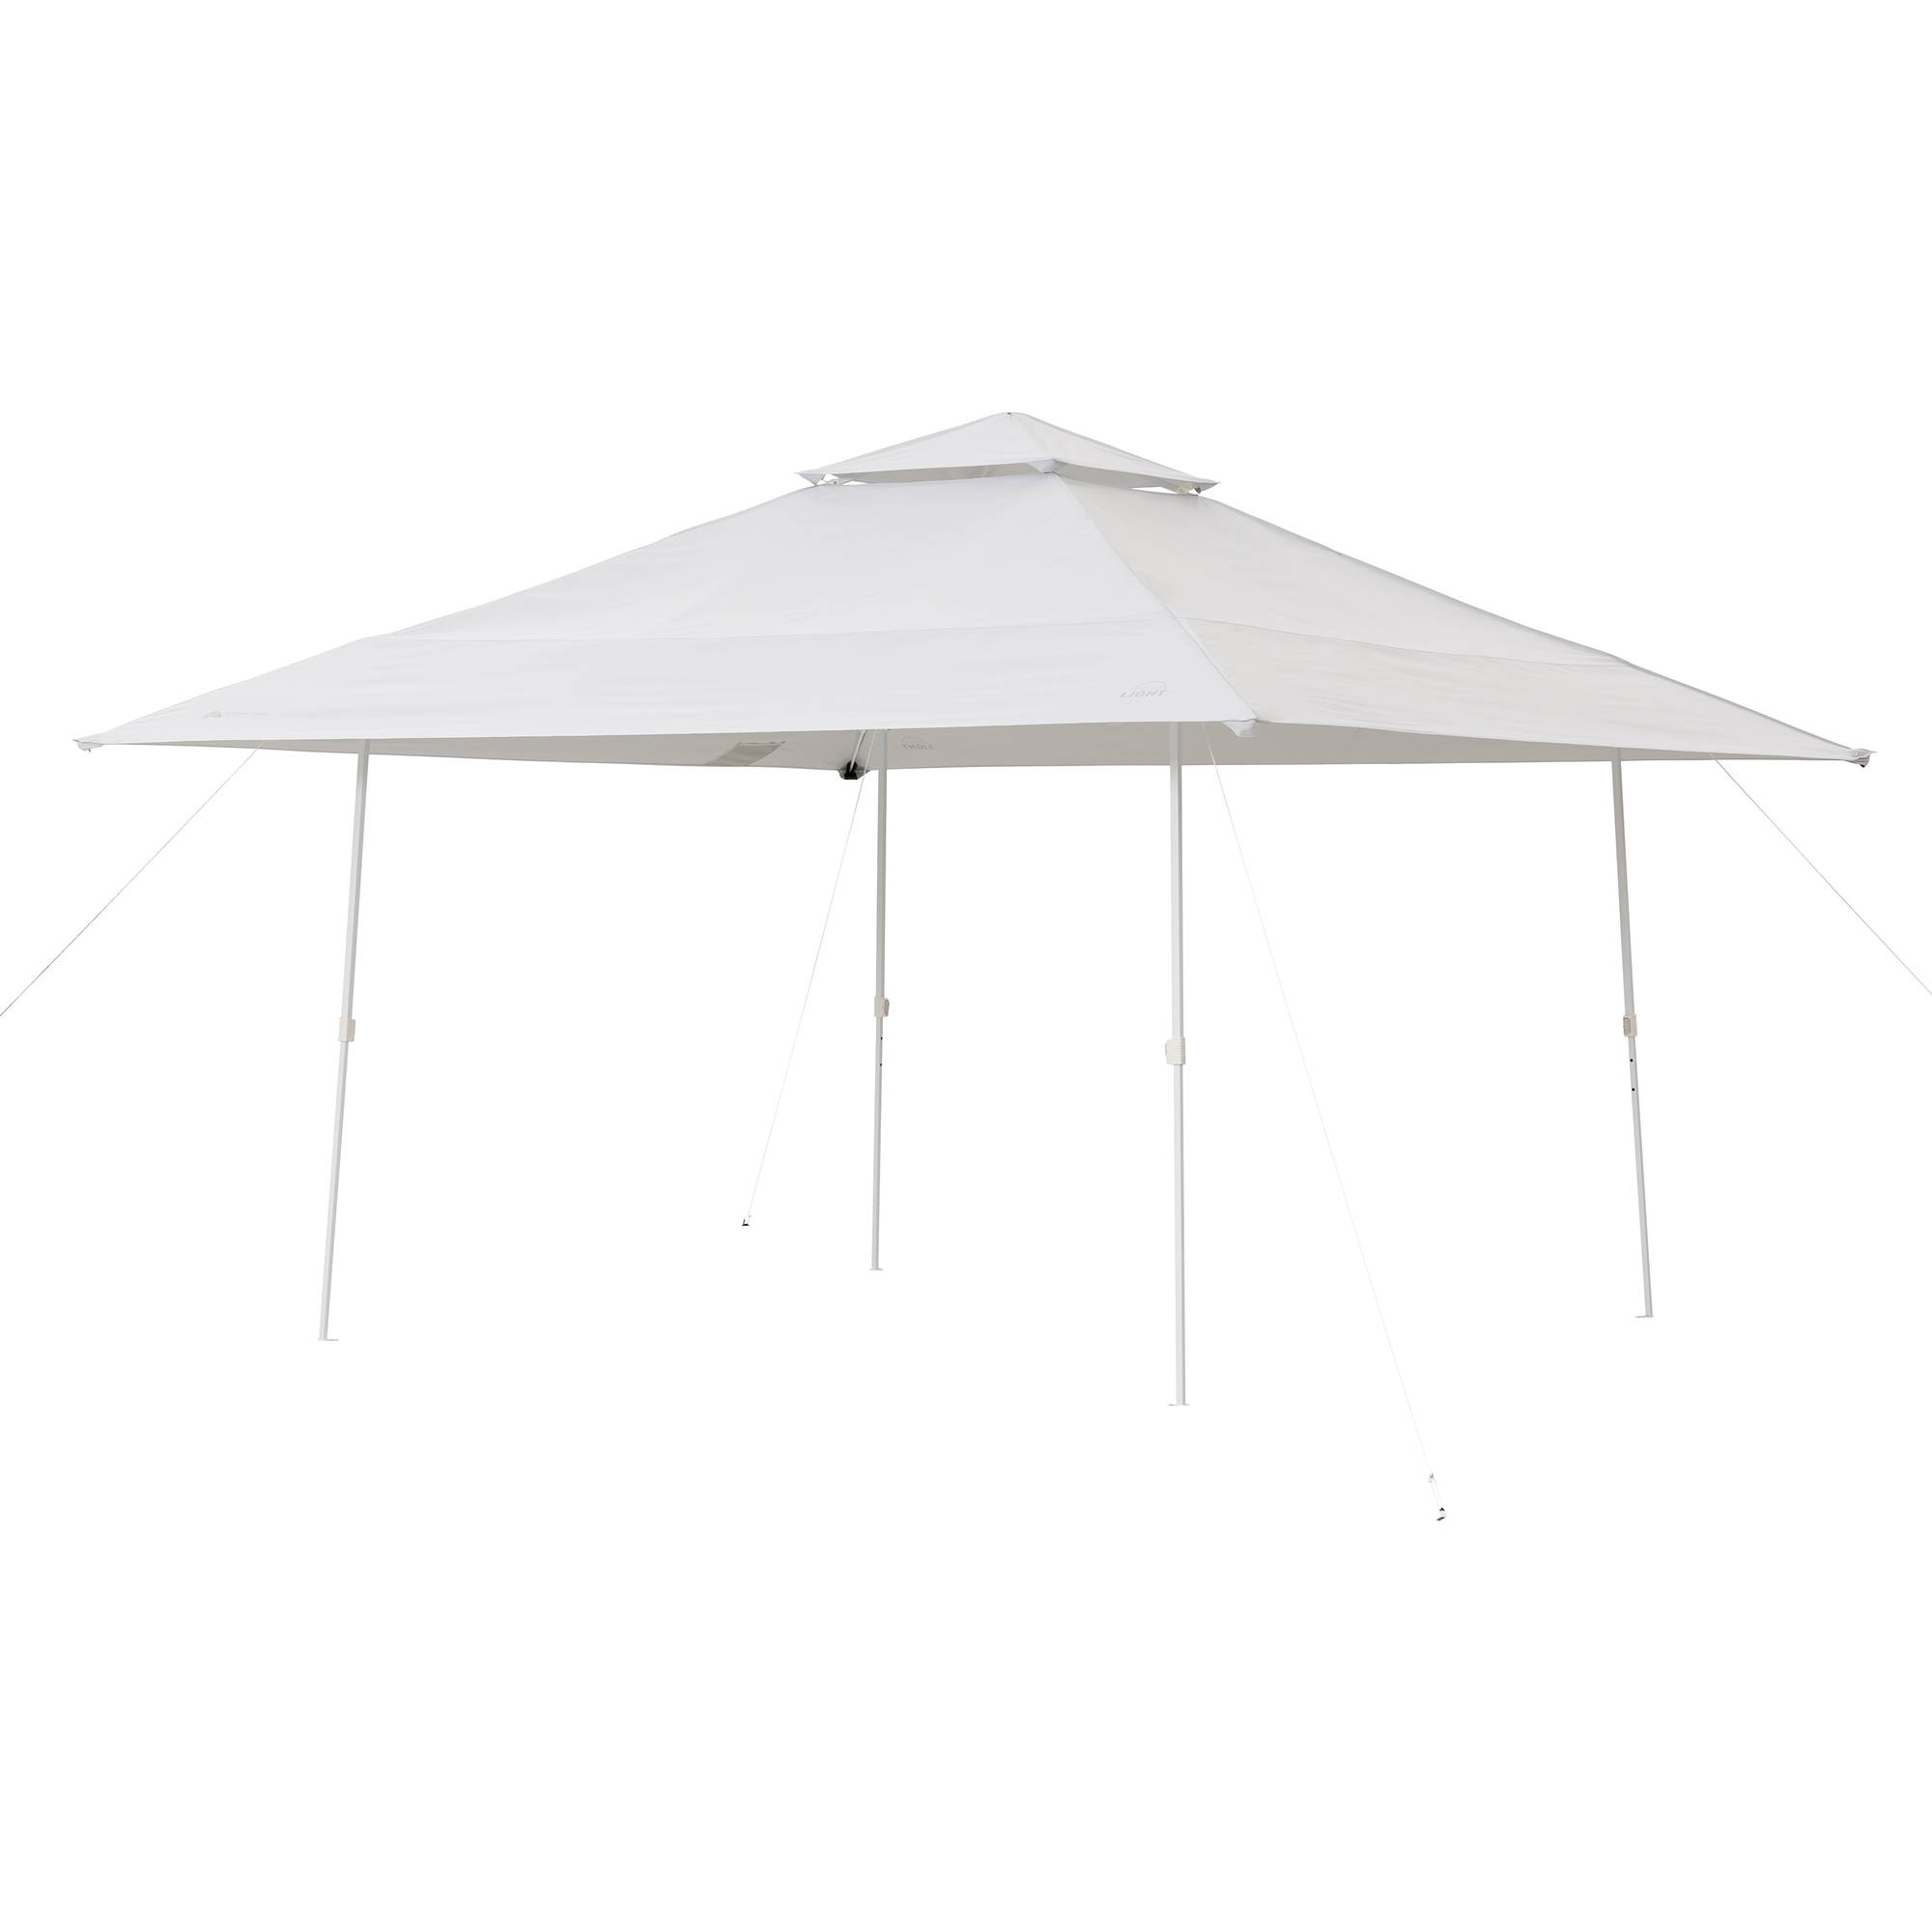 Ozark Trail 14u0027 x 14u0027 Instant Canopy With Led Lighting System  sc 1 st  Walmart : ozark tent parts - memphite.com